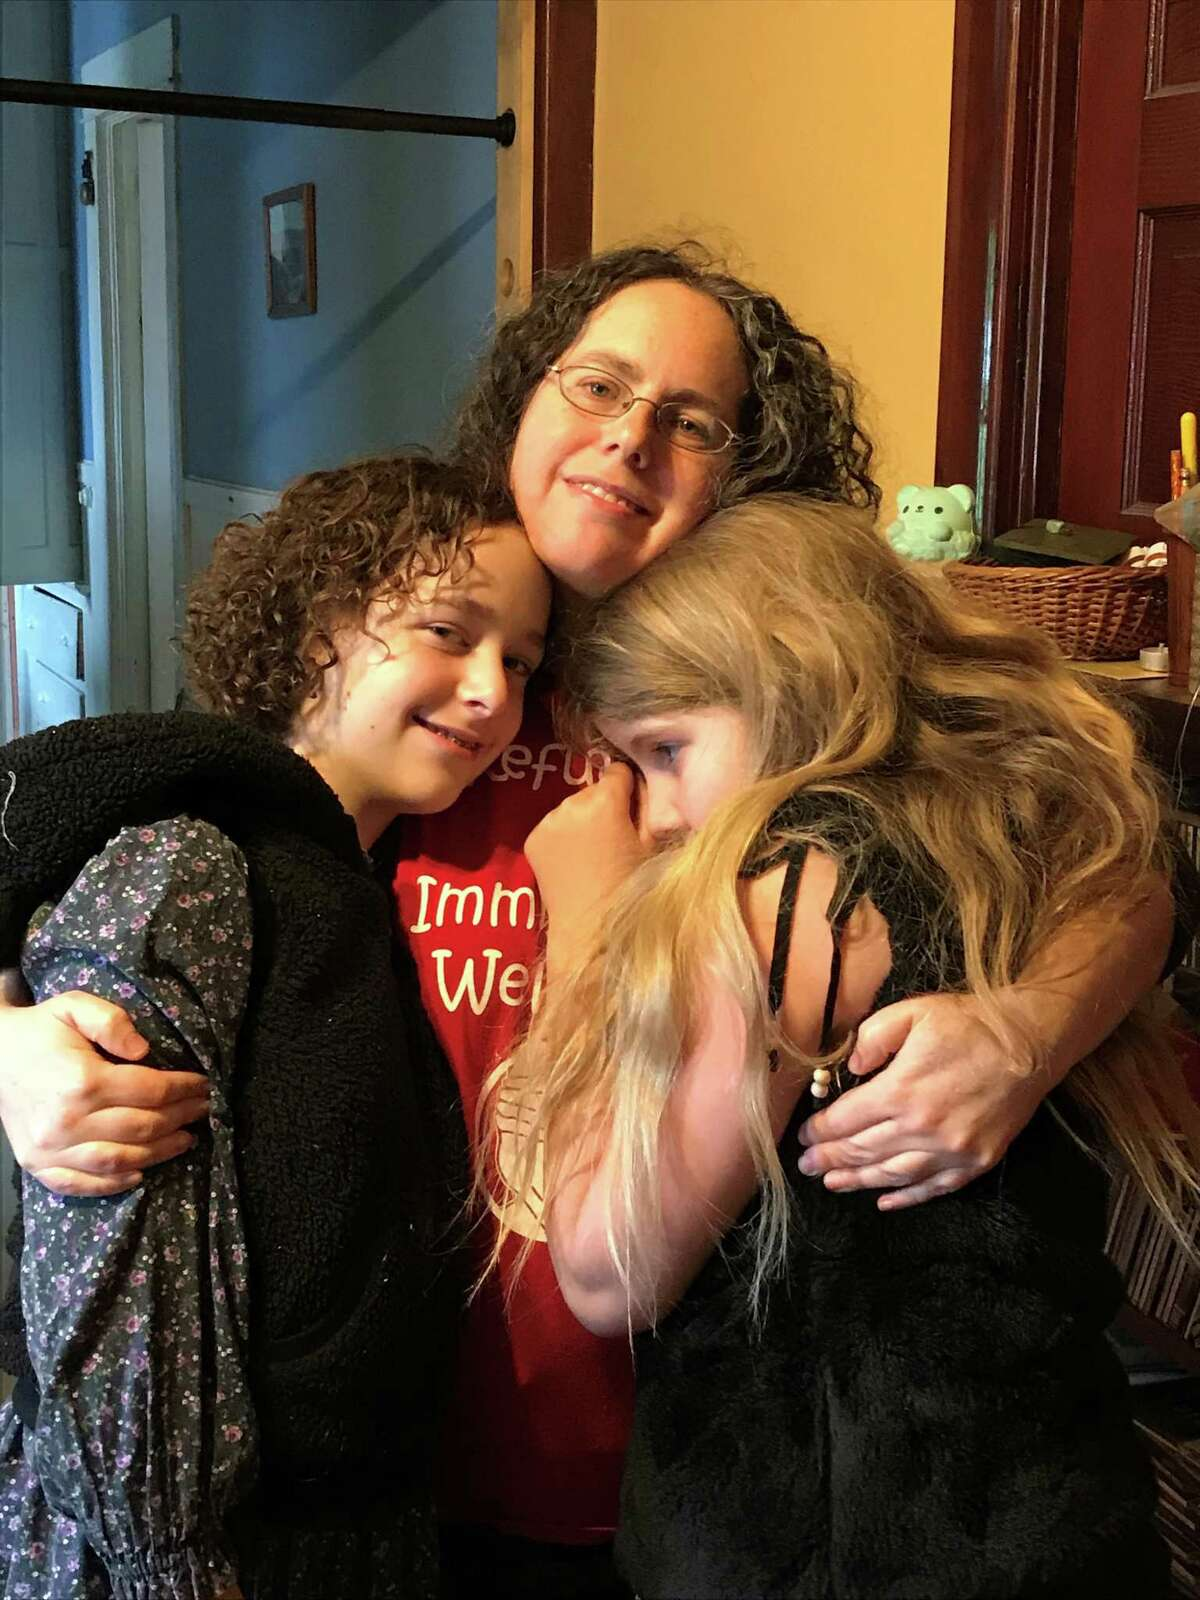 Albany local Miriam Axel-Lute with her daughters Nadia Tell 13, on left, Molly Tell, 9, right, in an undated photo. Axel-Lute traveled alone to participate in Never Again Action protests against migrant detention centers in Washington D.C. on July 16, 2019.